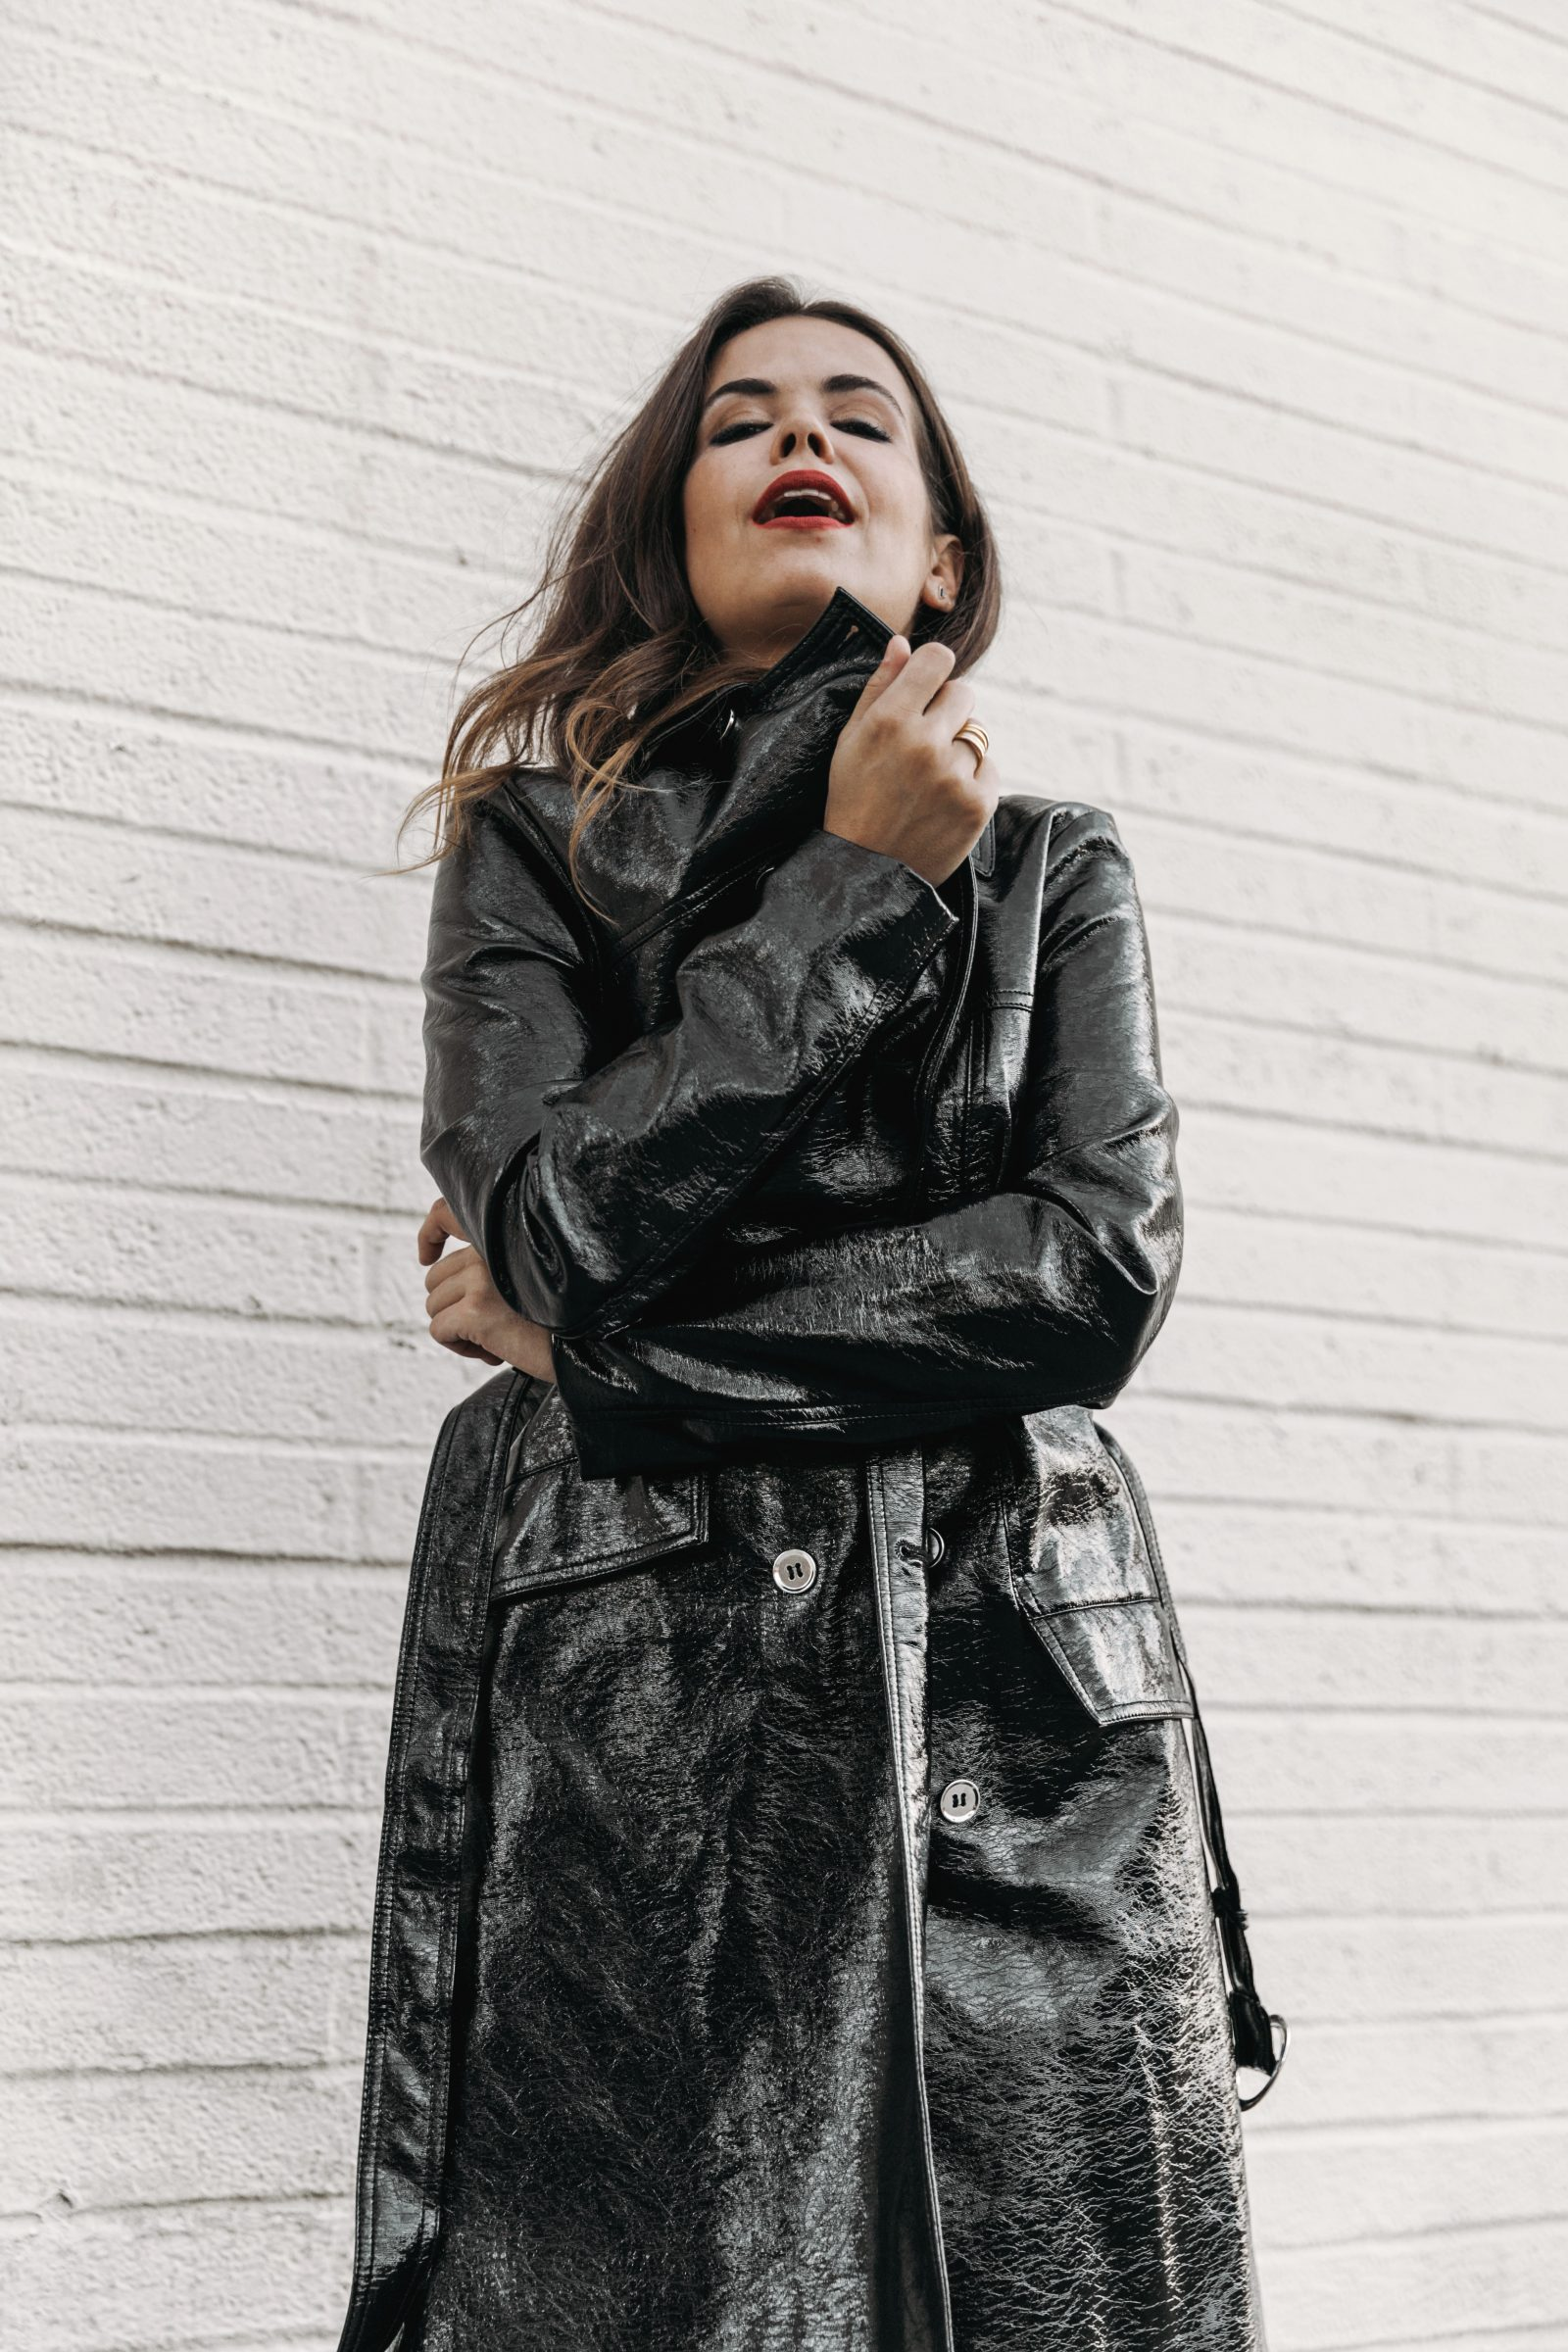 mark_and_spencer-alexa_chung_collection-animal_print_long_dress-black_trench-black_booties-knitt_jumper-outfit-la-street_style-collage_vintage-maxi_dress-61